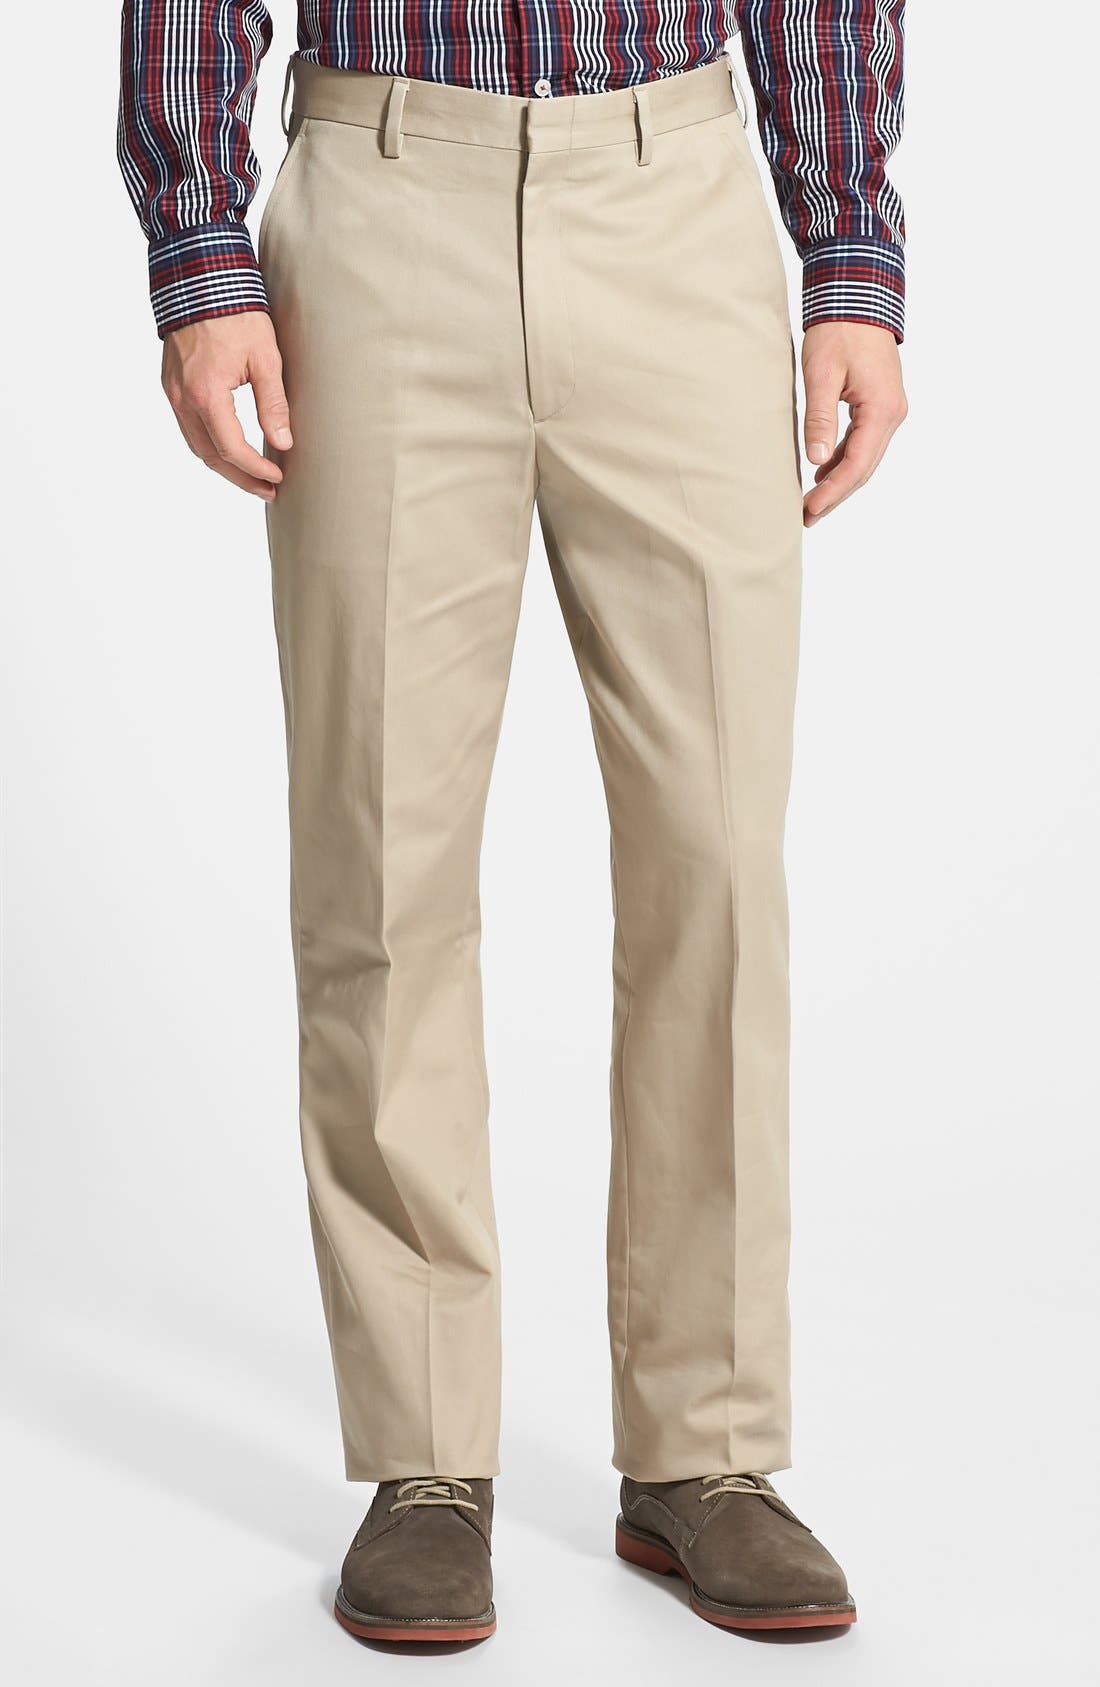 Flat Front Wrinkle Resistant Cotton Trousers,                         Main,                         color, KHAKI